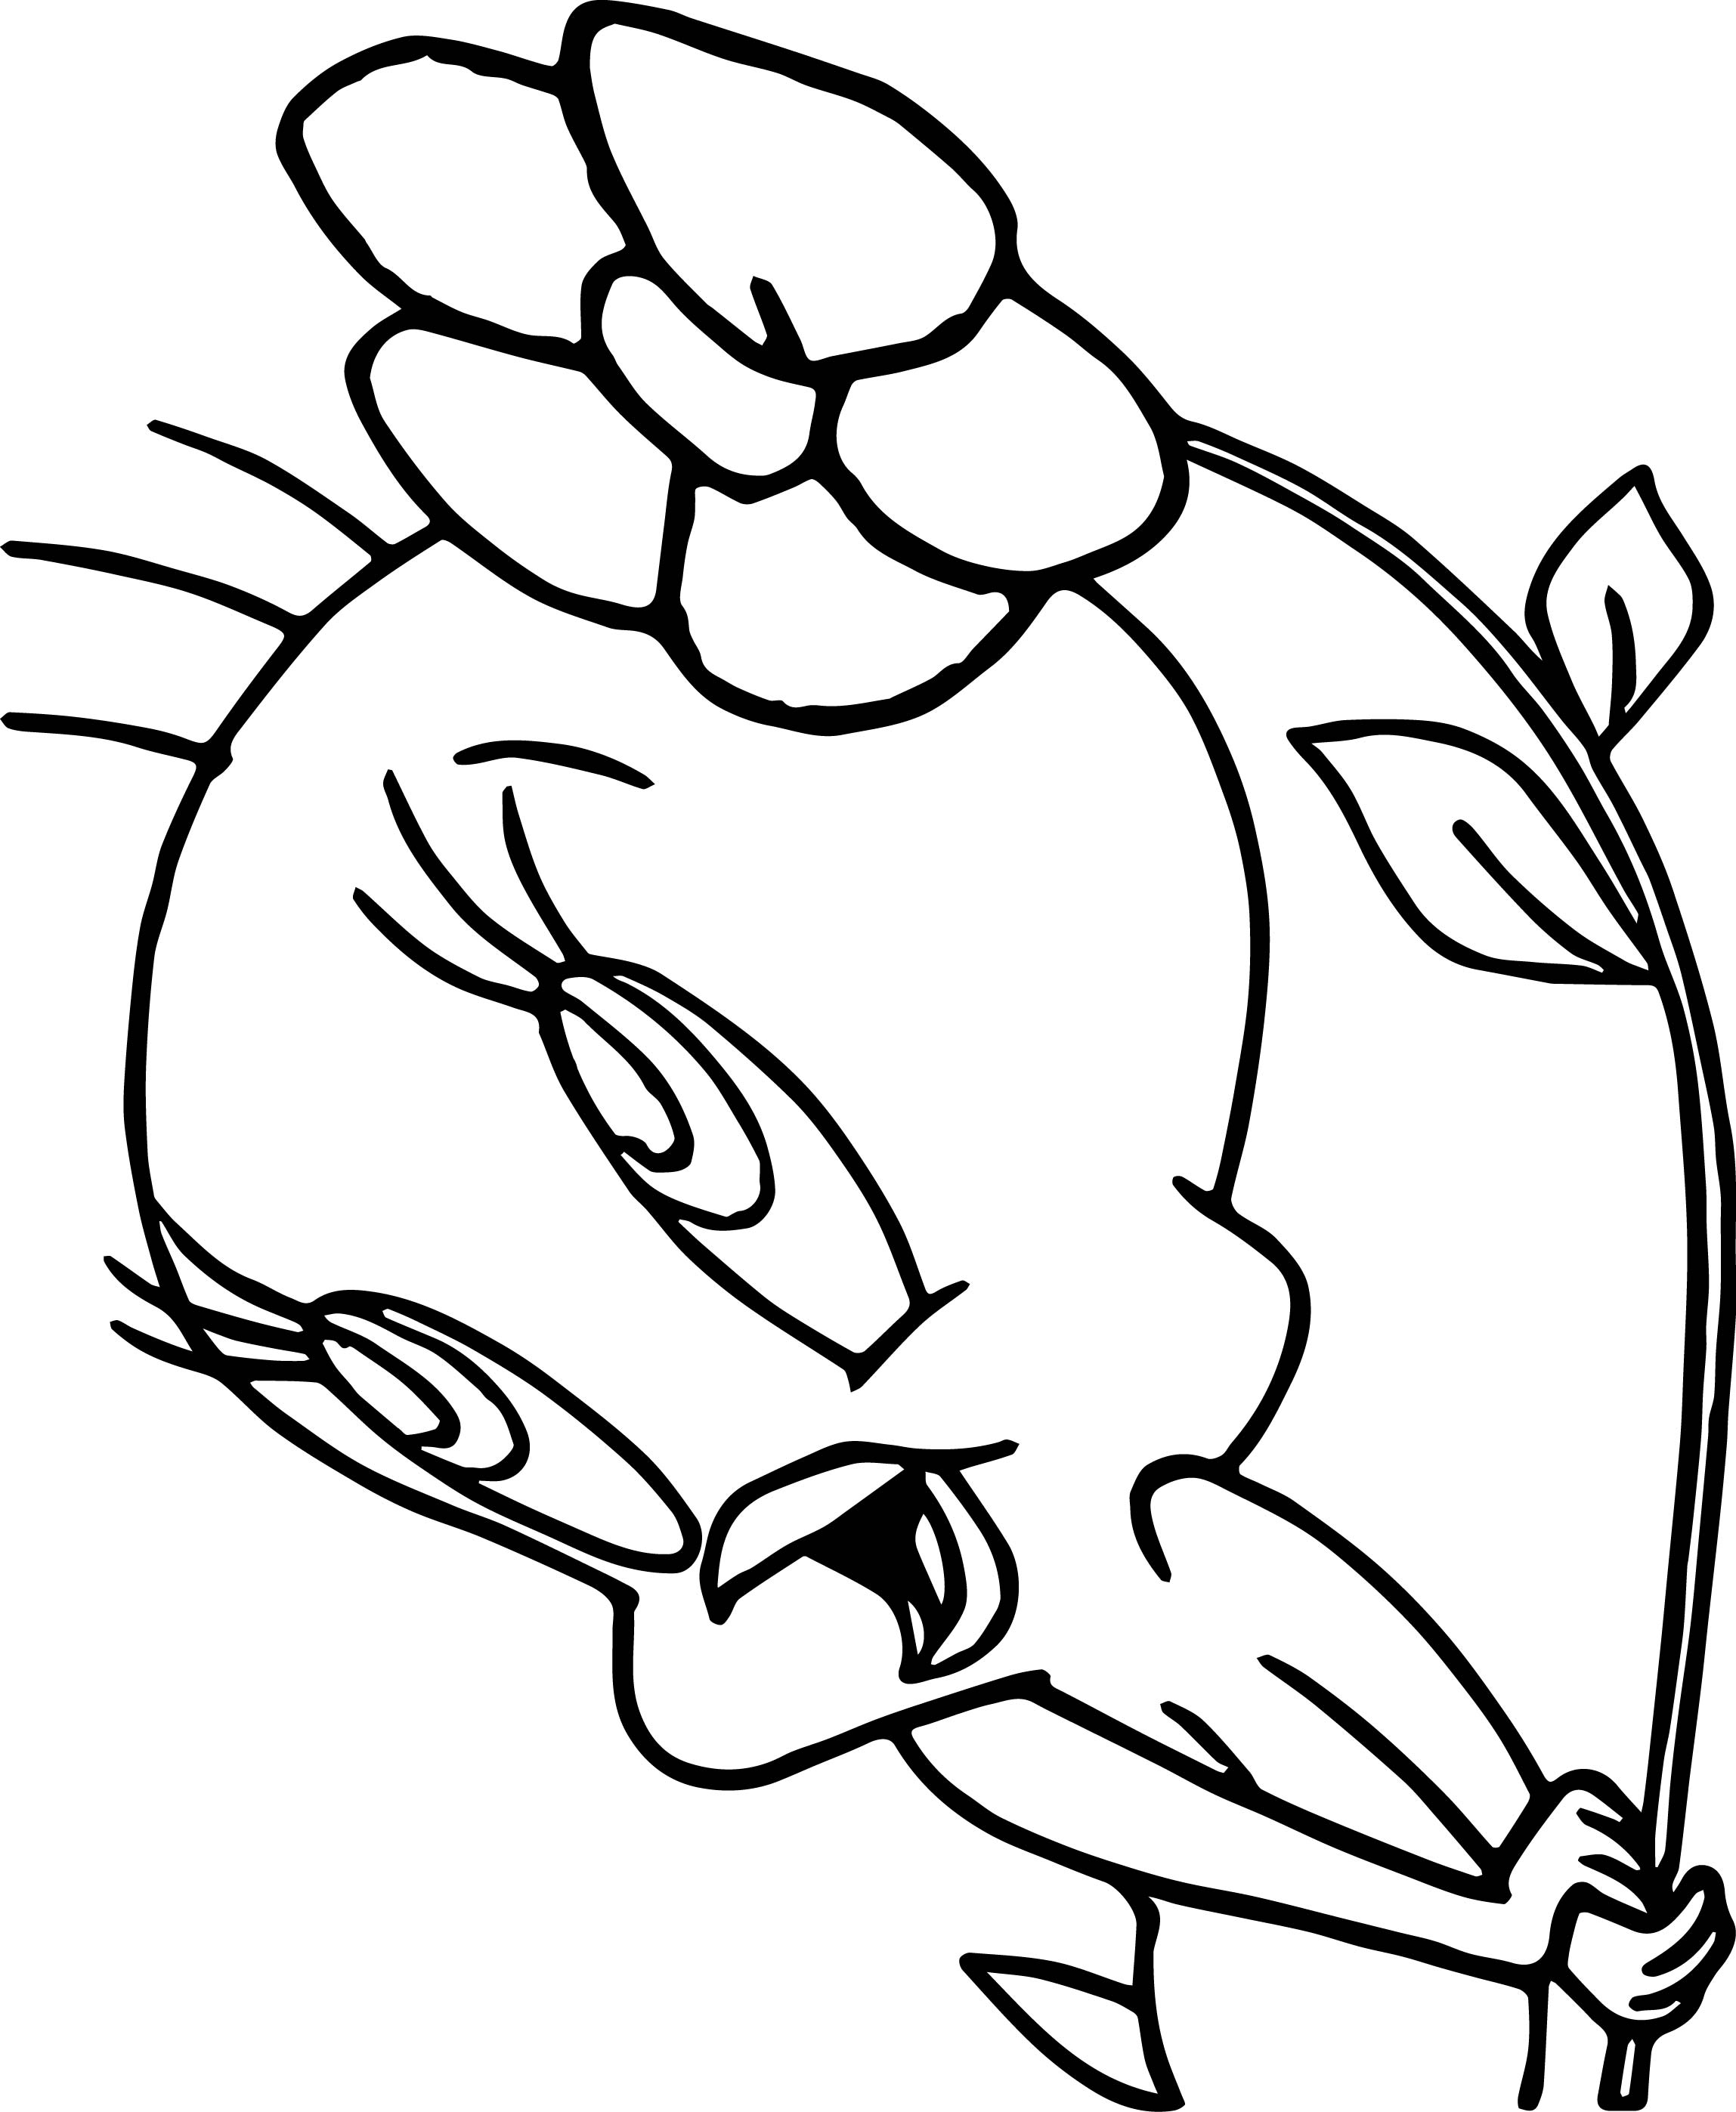 Tweety Flower Wind Coloring Page